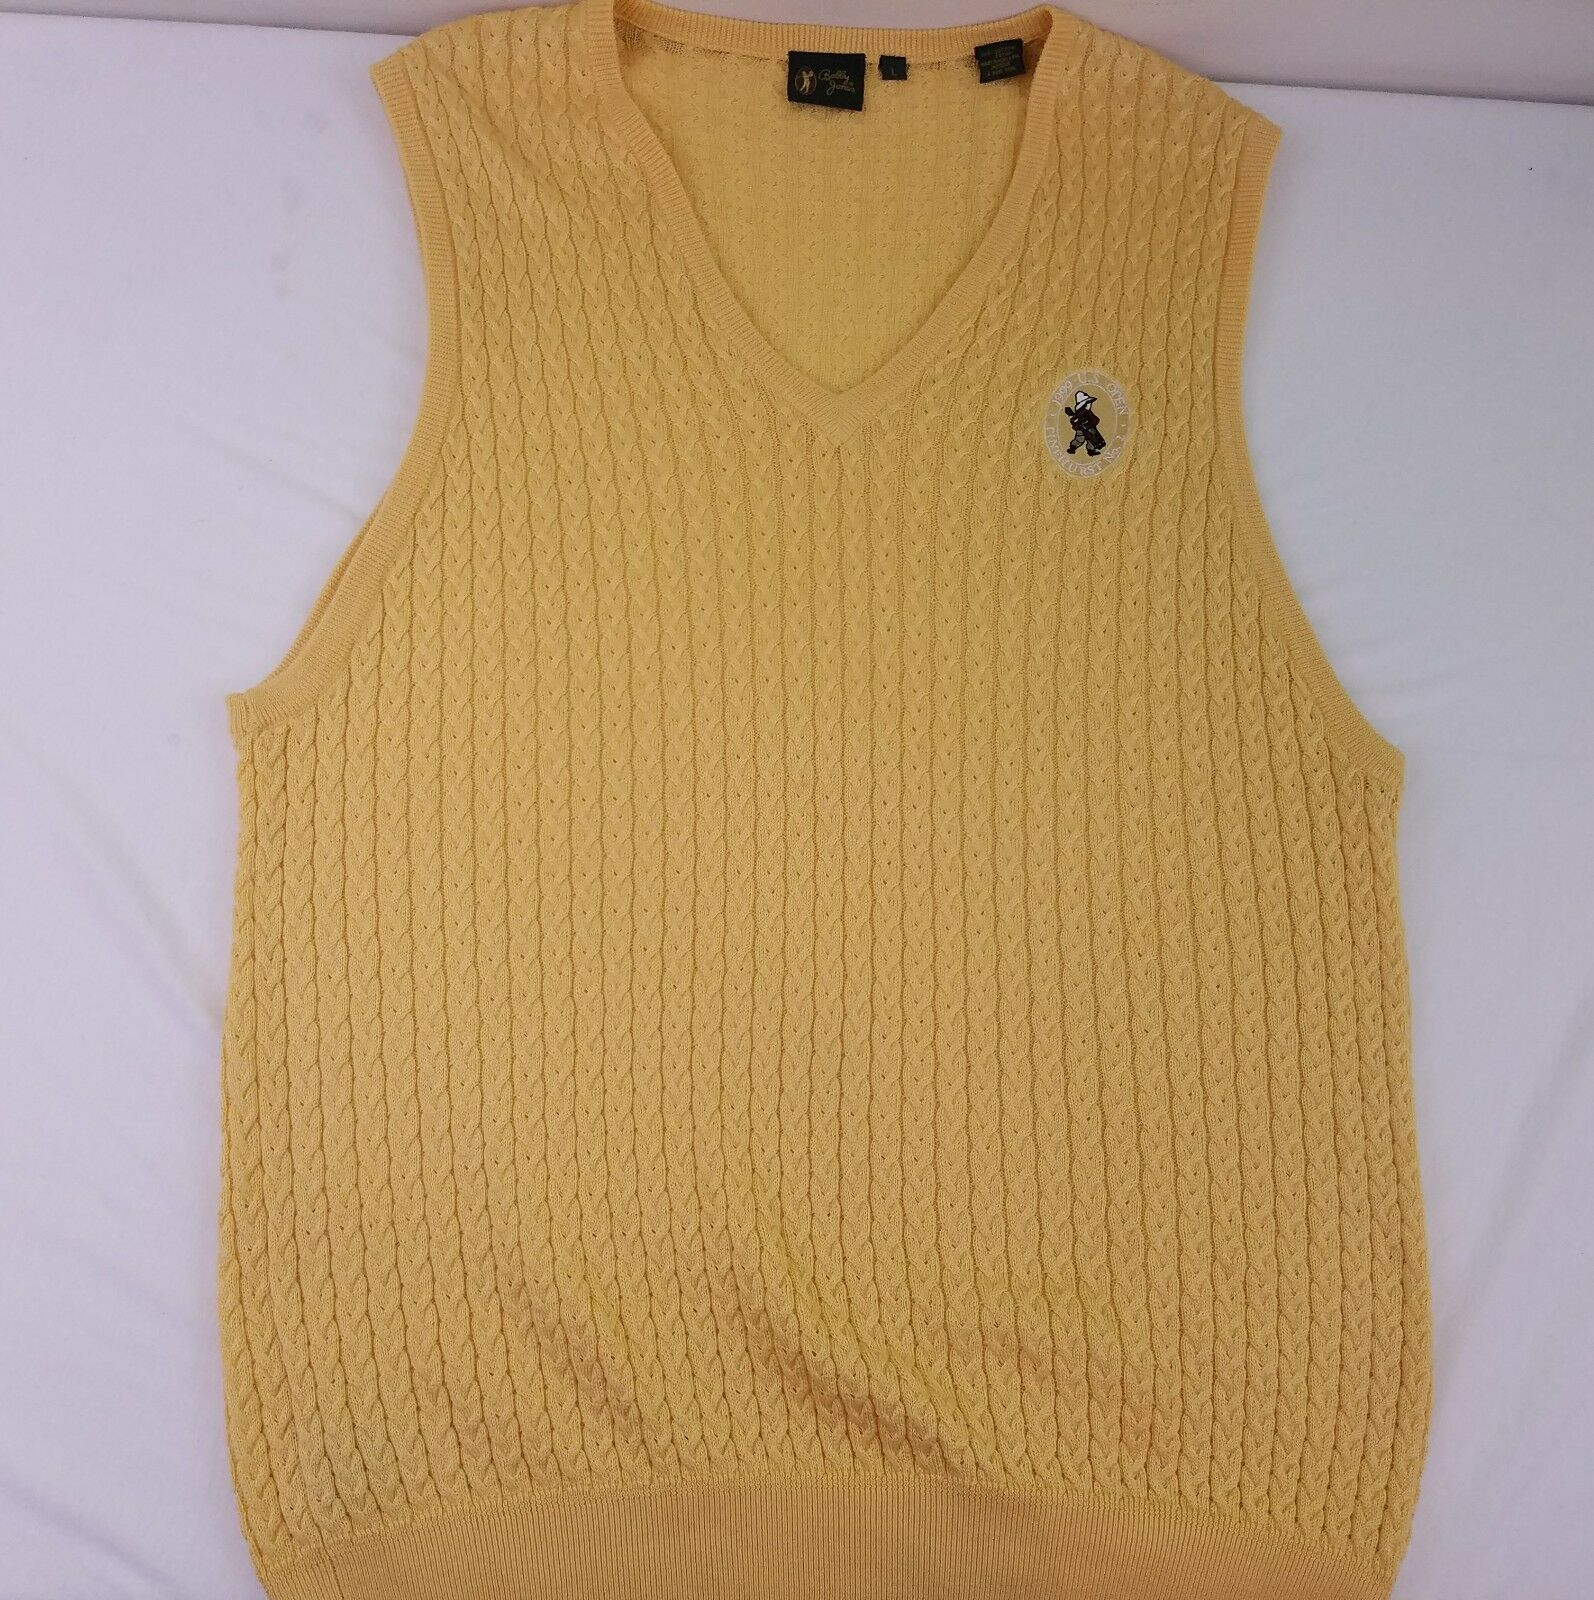 Bobby Jones Men's Yellow 1999 US Open Cable Knit Sweater Vest Size Large